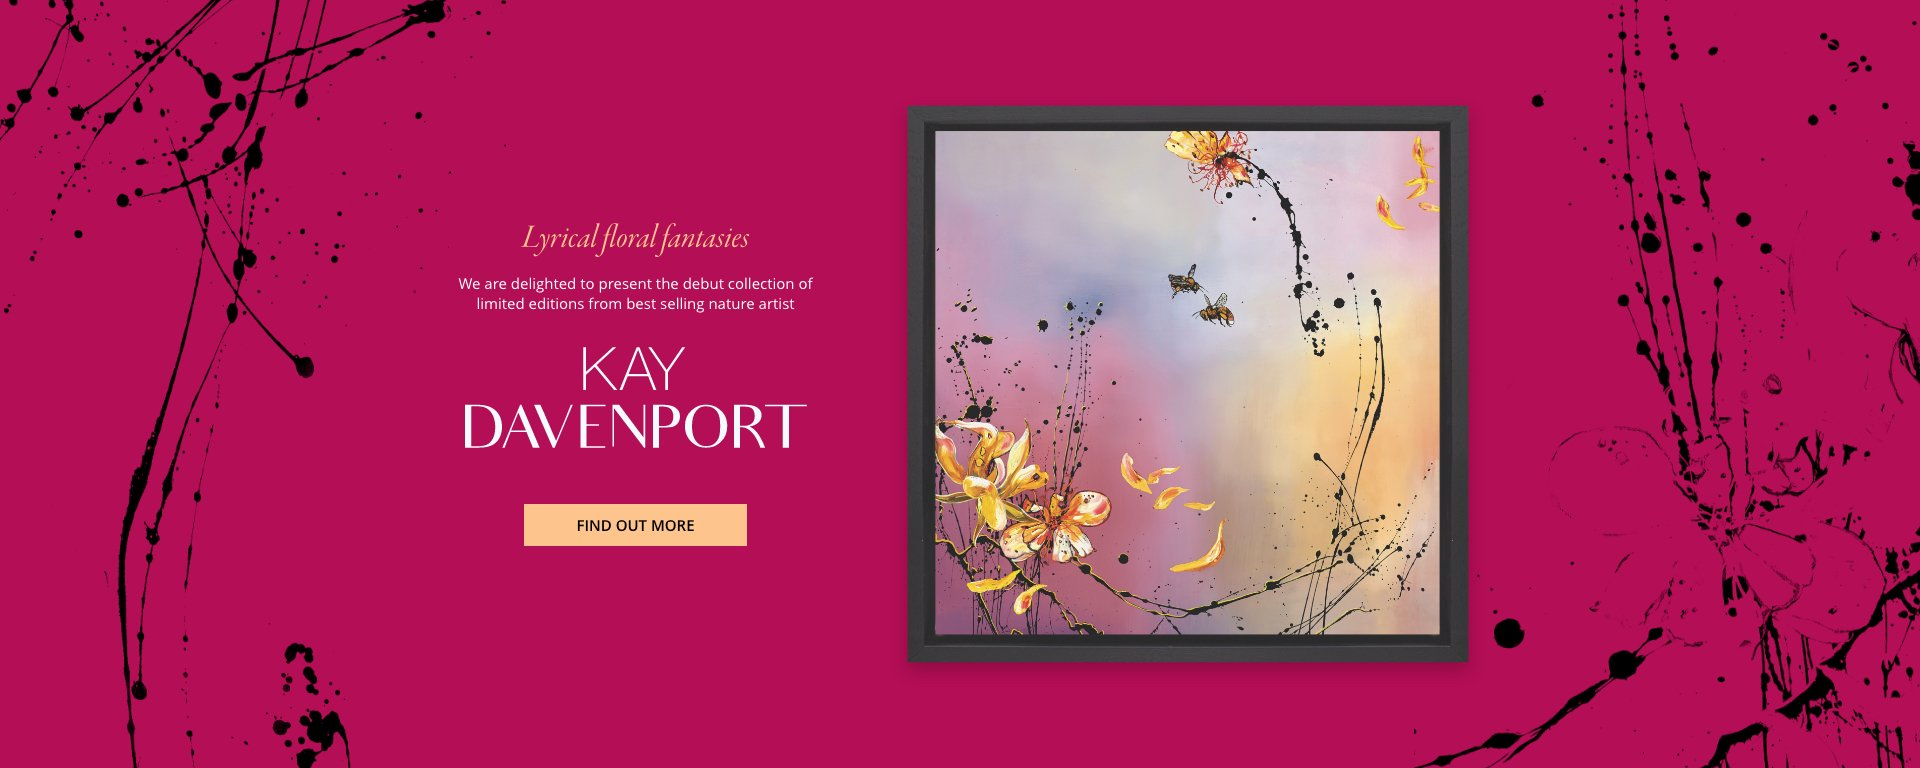 Kay Davenport's Debut Collection – Lyrical Floral Fantasies